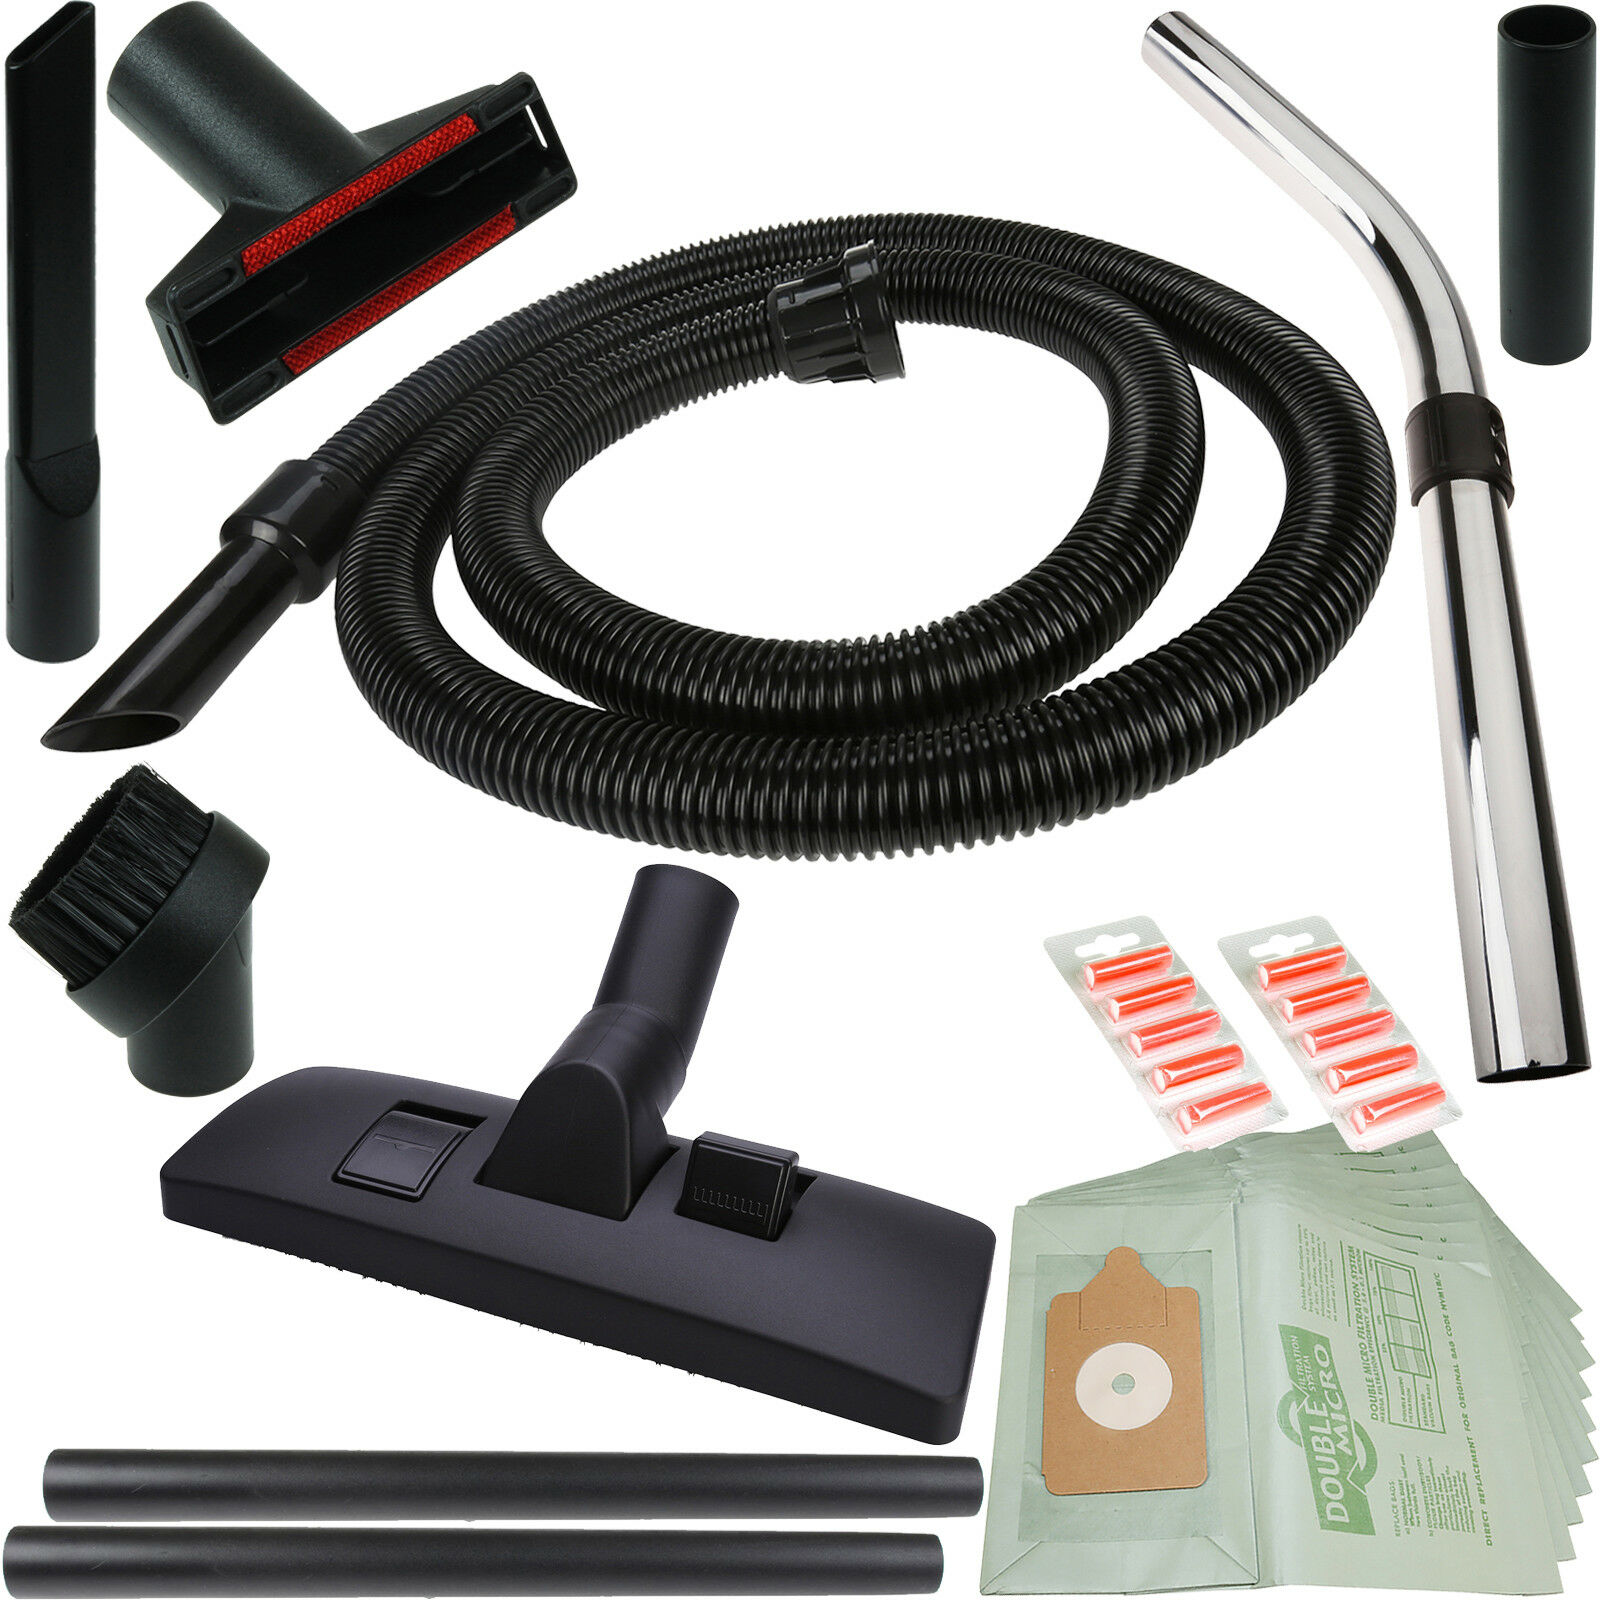 32mm Vacuum Cleaner Brush Tool Adaptor Kit For Numatic Henry Hetty George Hoover